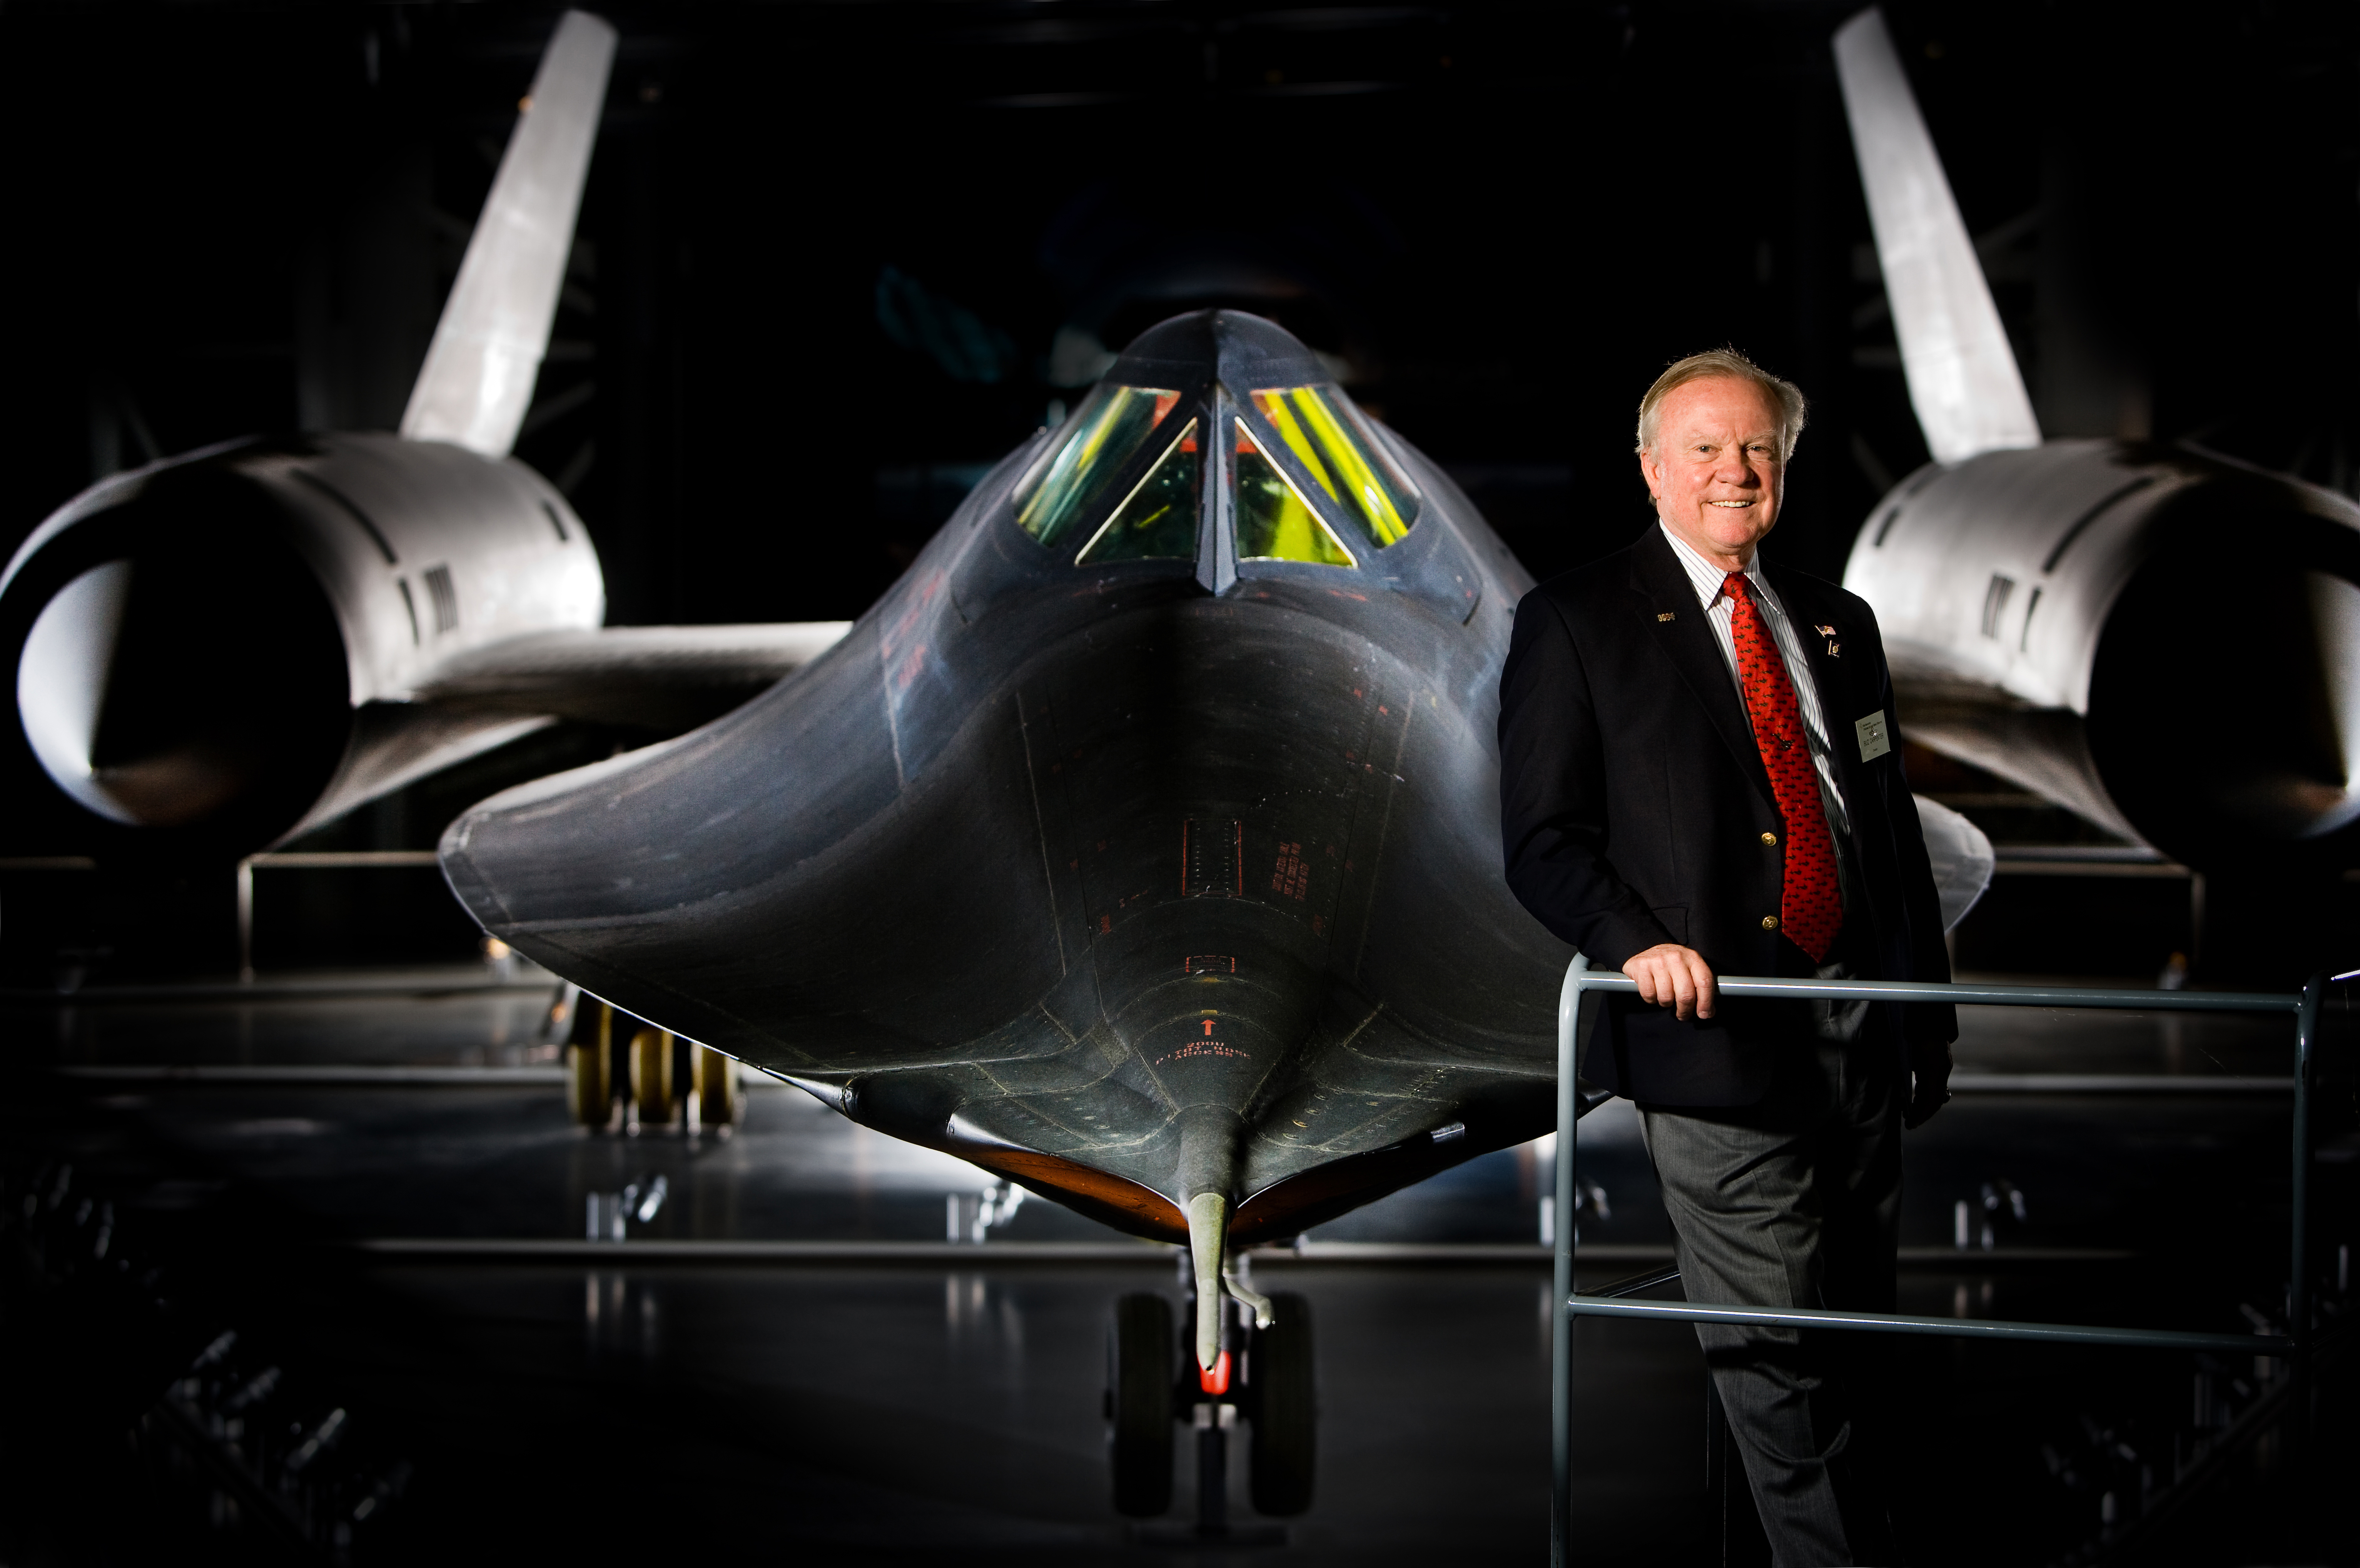 SR-71 Blackbird - Buzz Carpenter